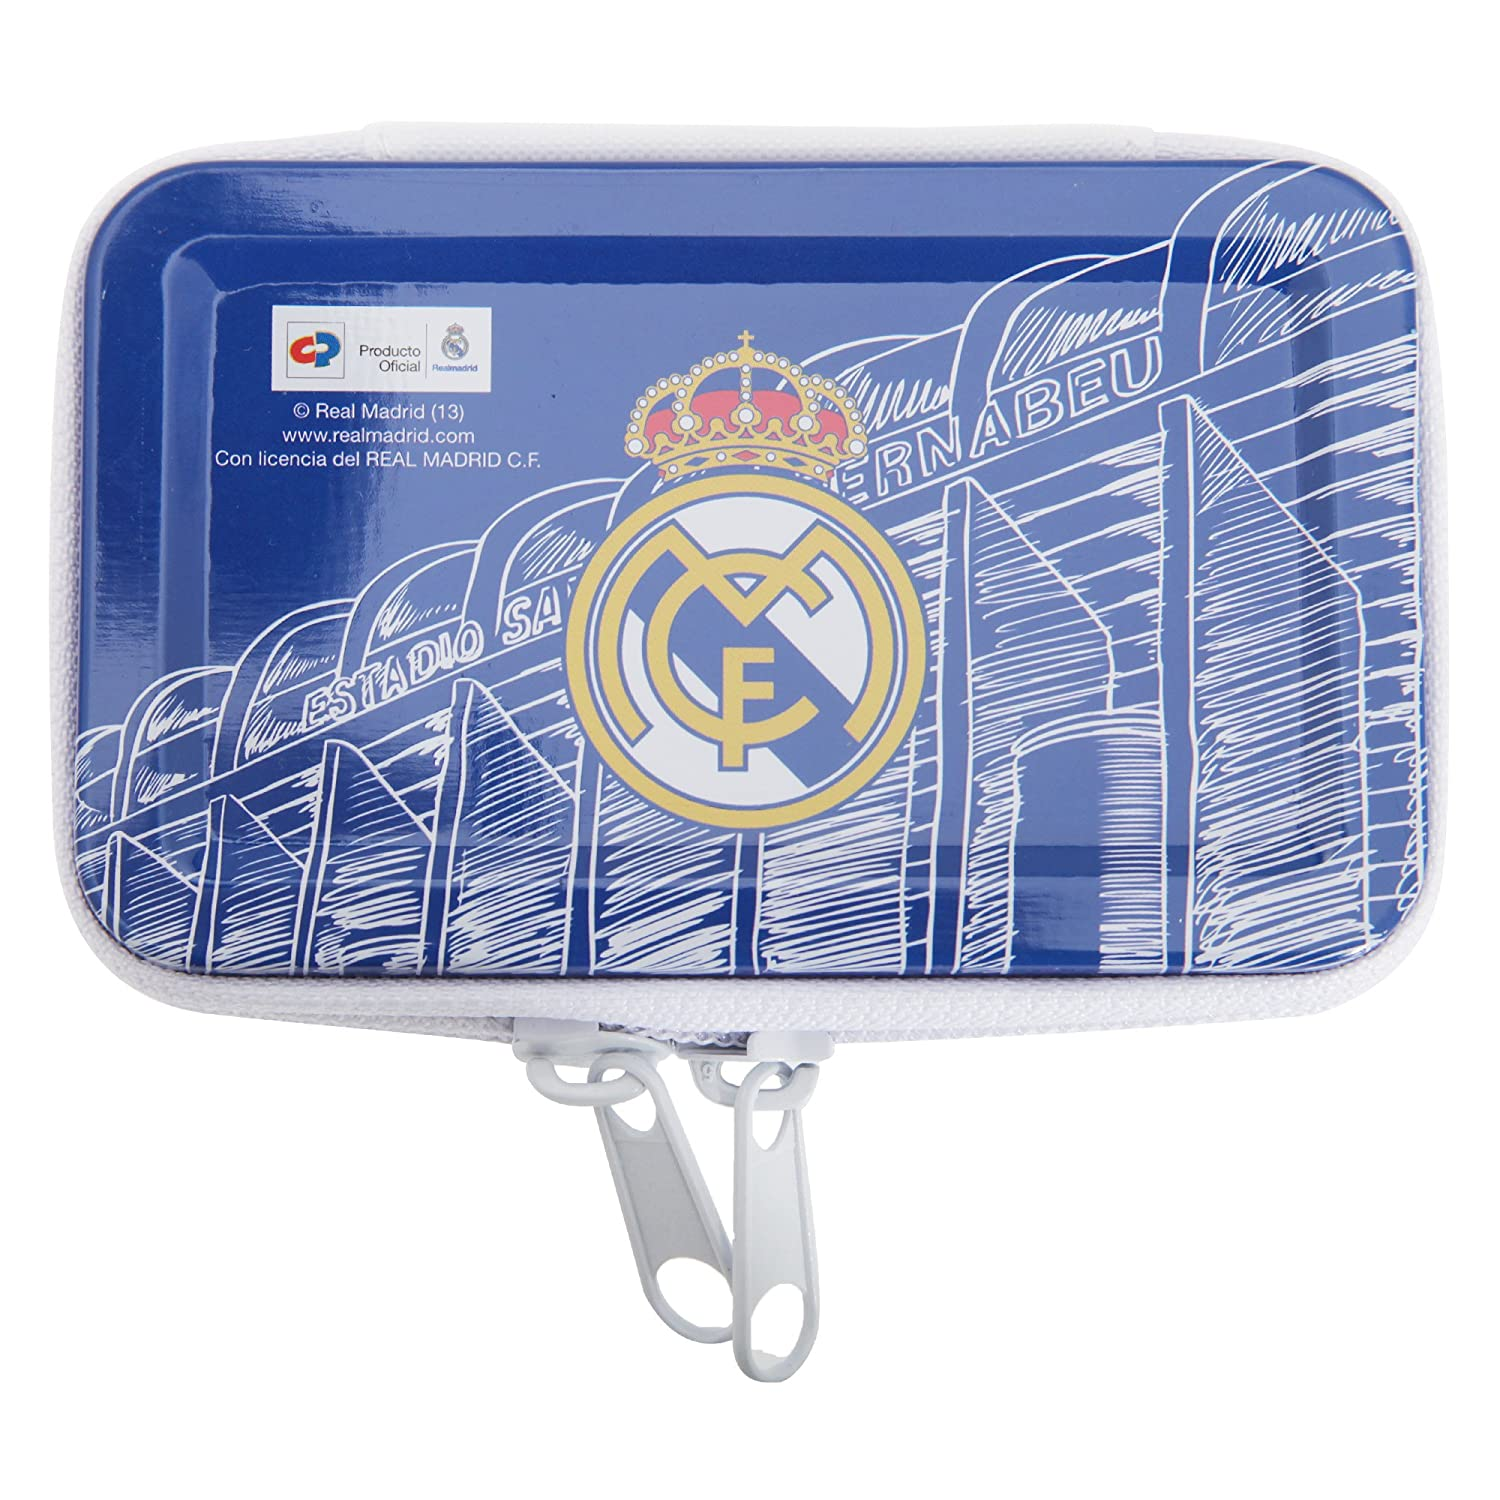 Portatodo monedero Real Madrid metalico: Amazon.es: Hogar